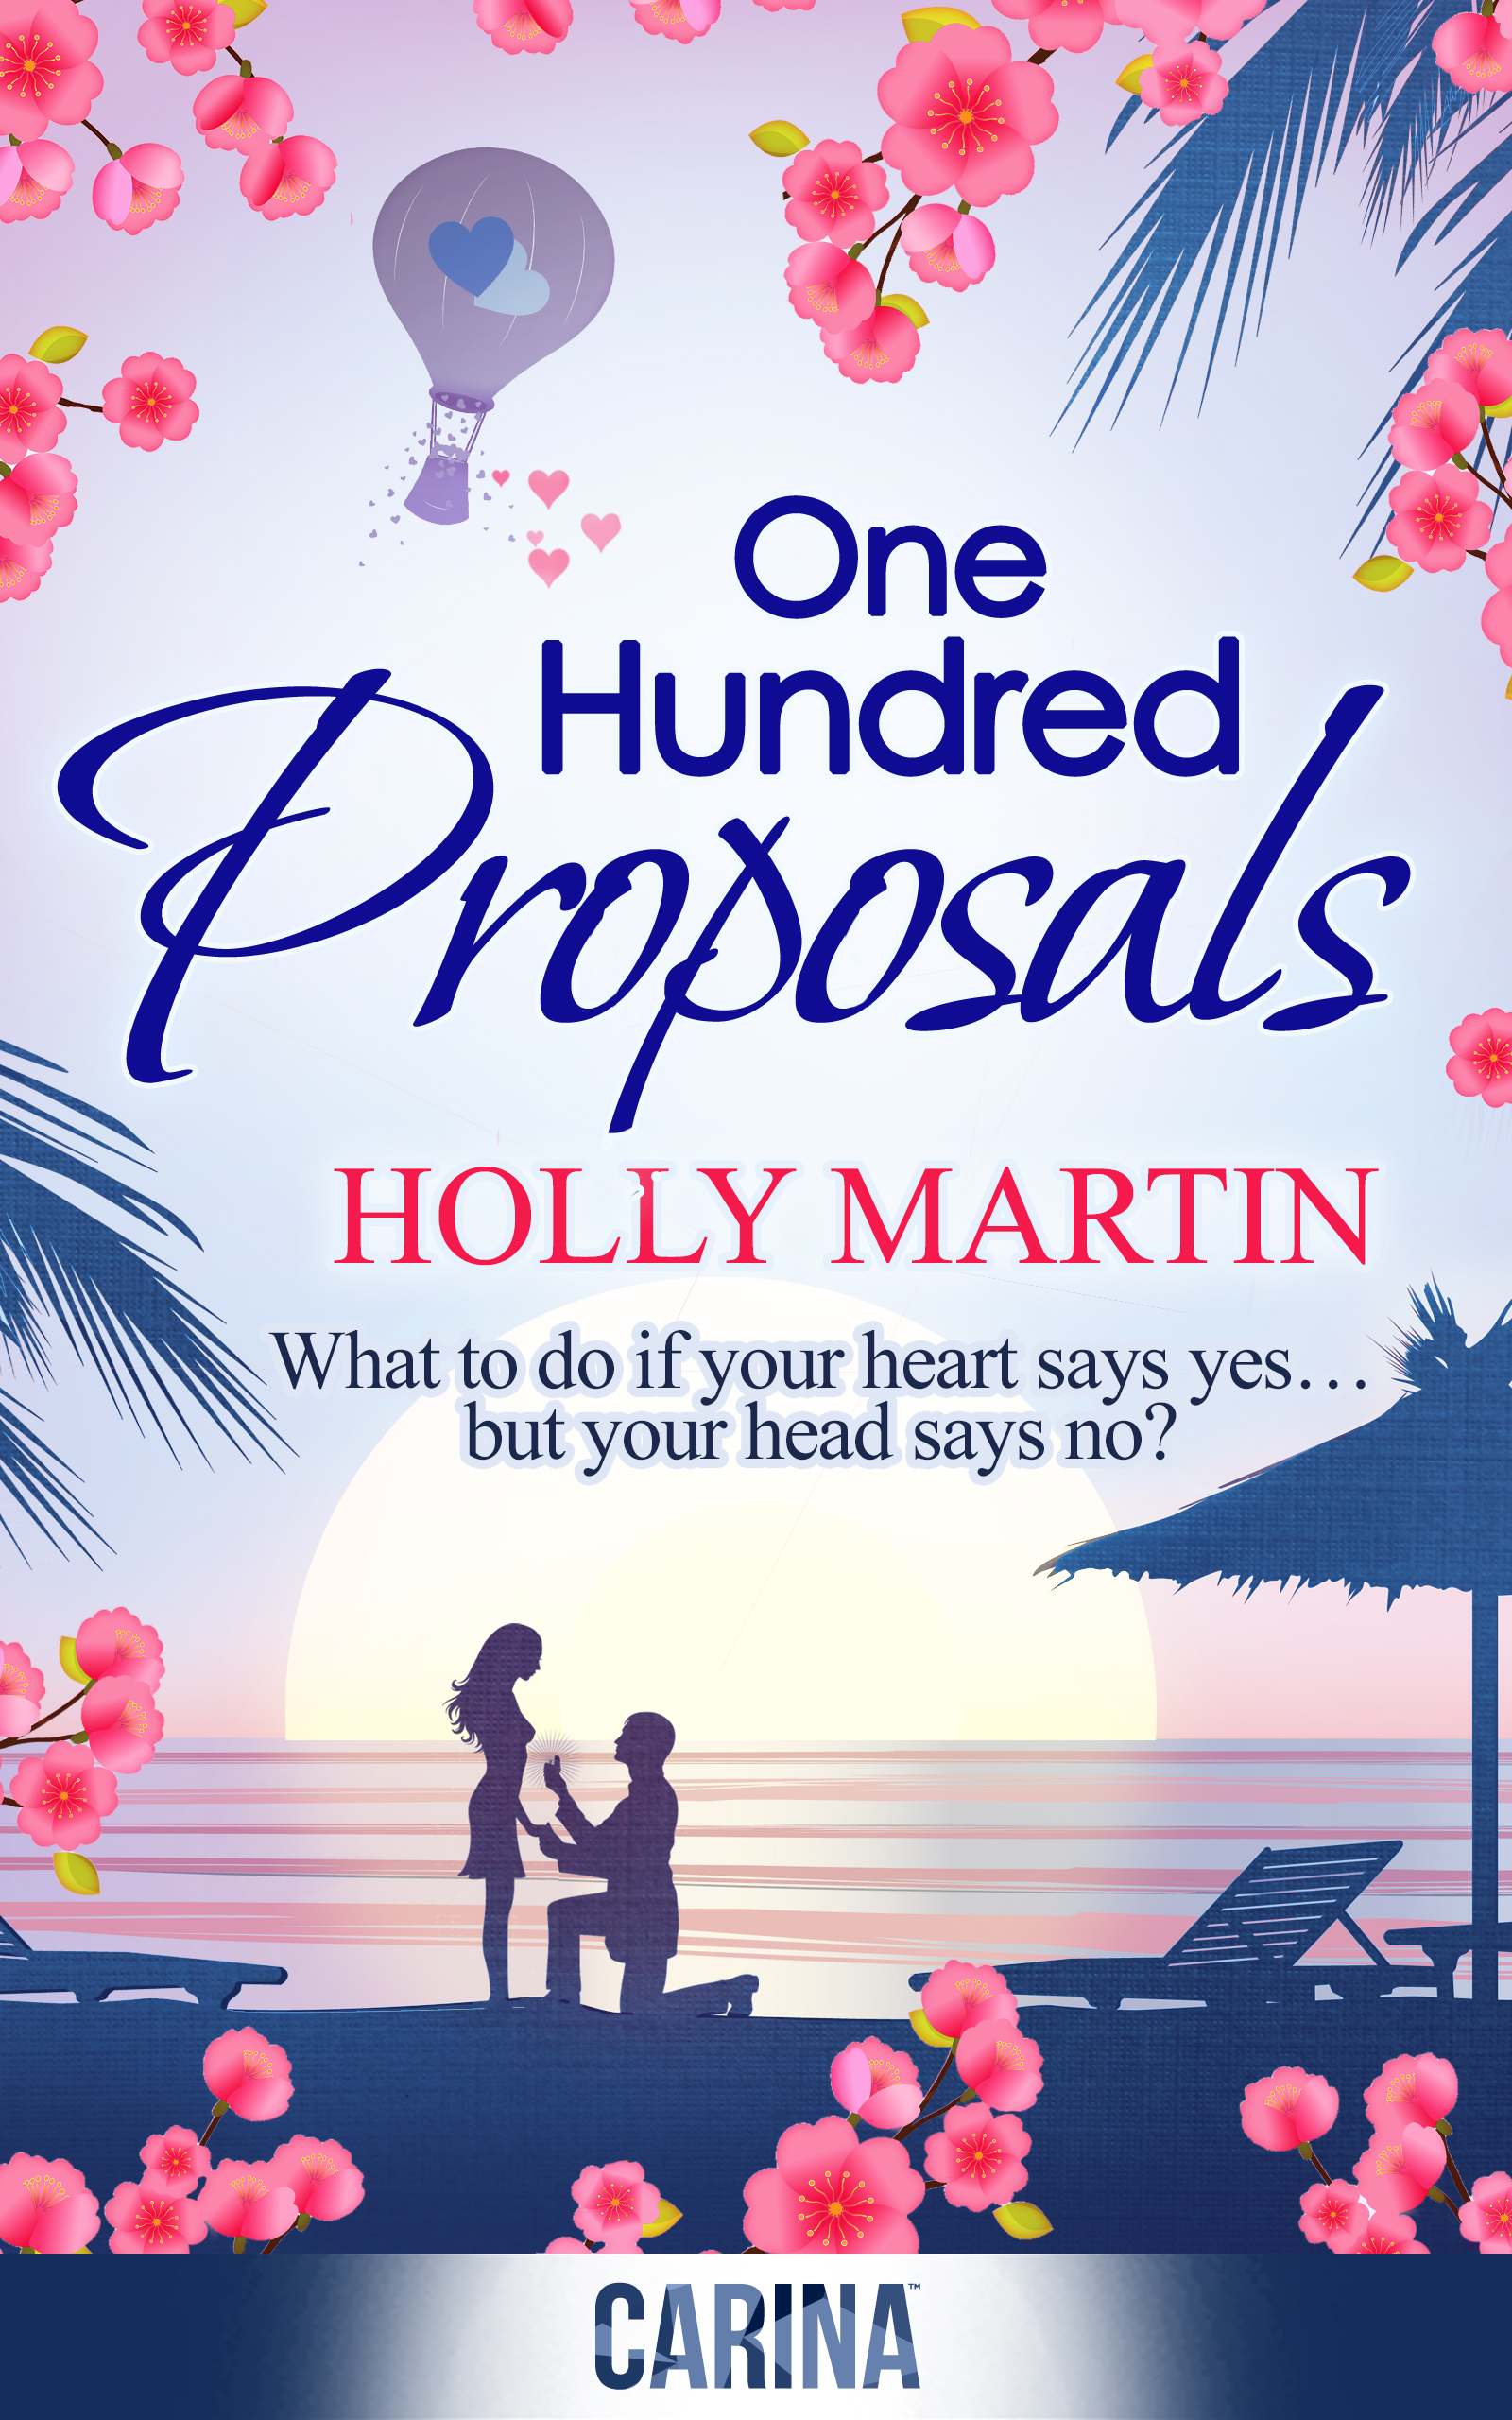 Publication day for One Hundred Proposals by Holly Martin